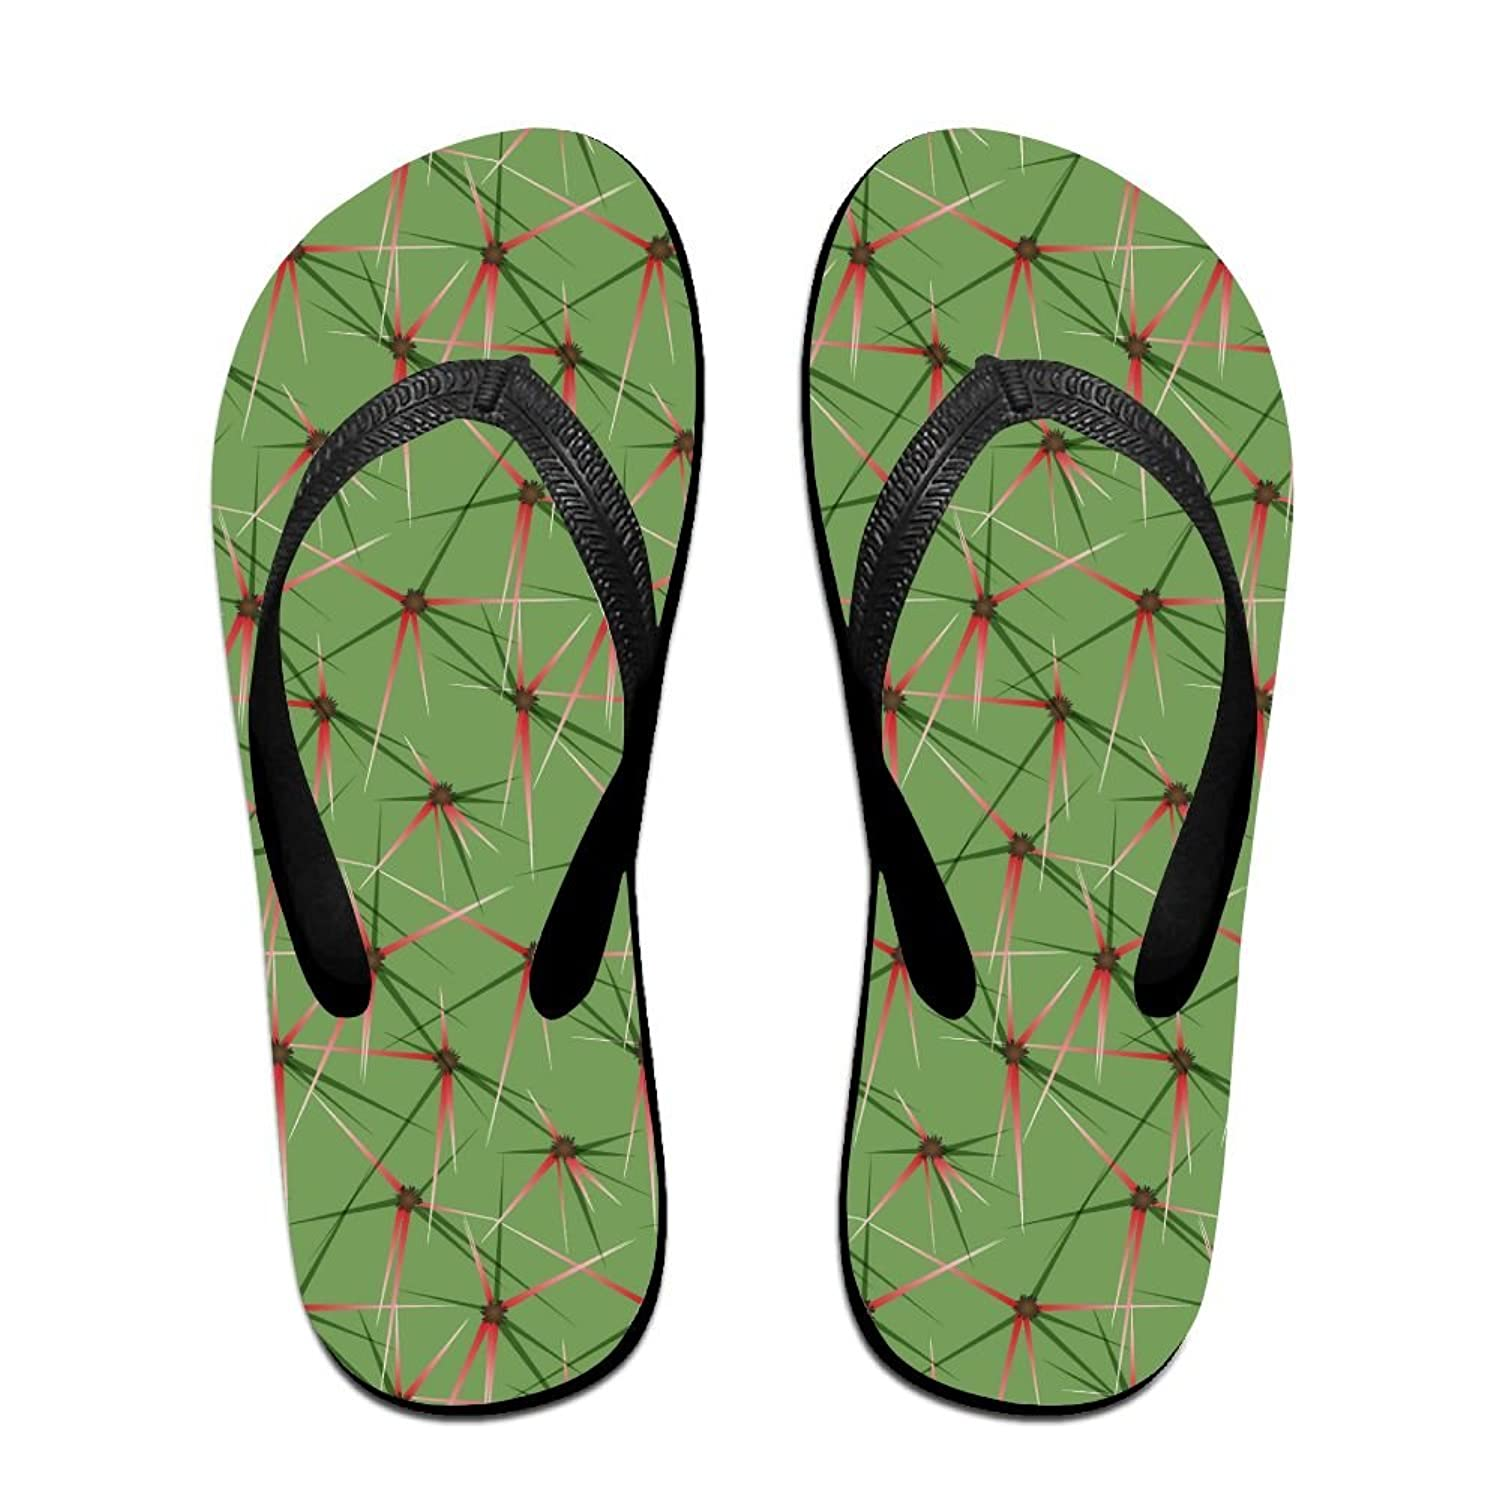 ce66ae76f 60%OFF Cactus Spine And Rib Vintage Flip Flop Sandals Casual Outdoor  Slippers Platform Shoes